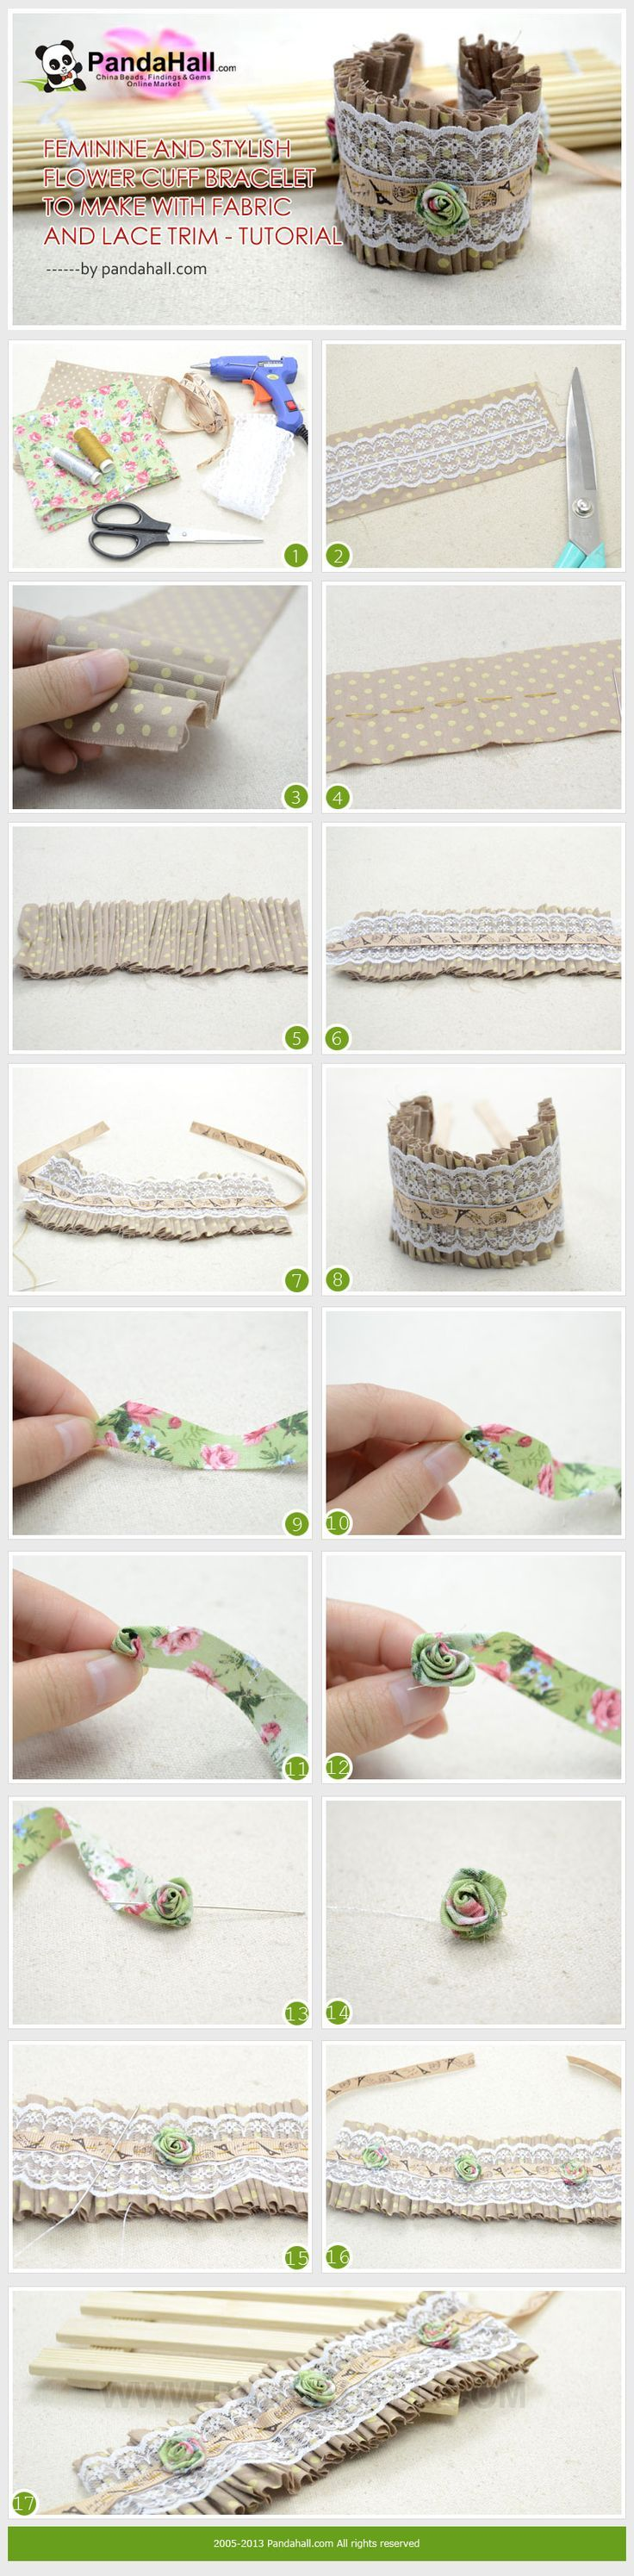 Feminine and Stylish Flower Cuff Bracelet to Make with Fabric and Lace Trim - #DIY